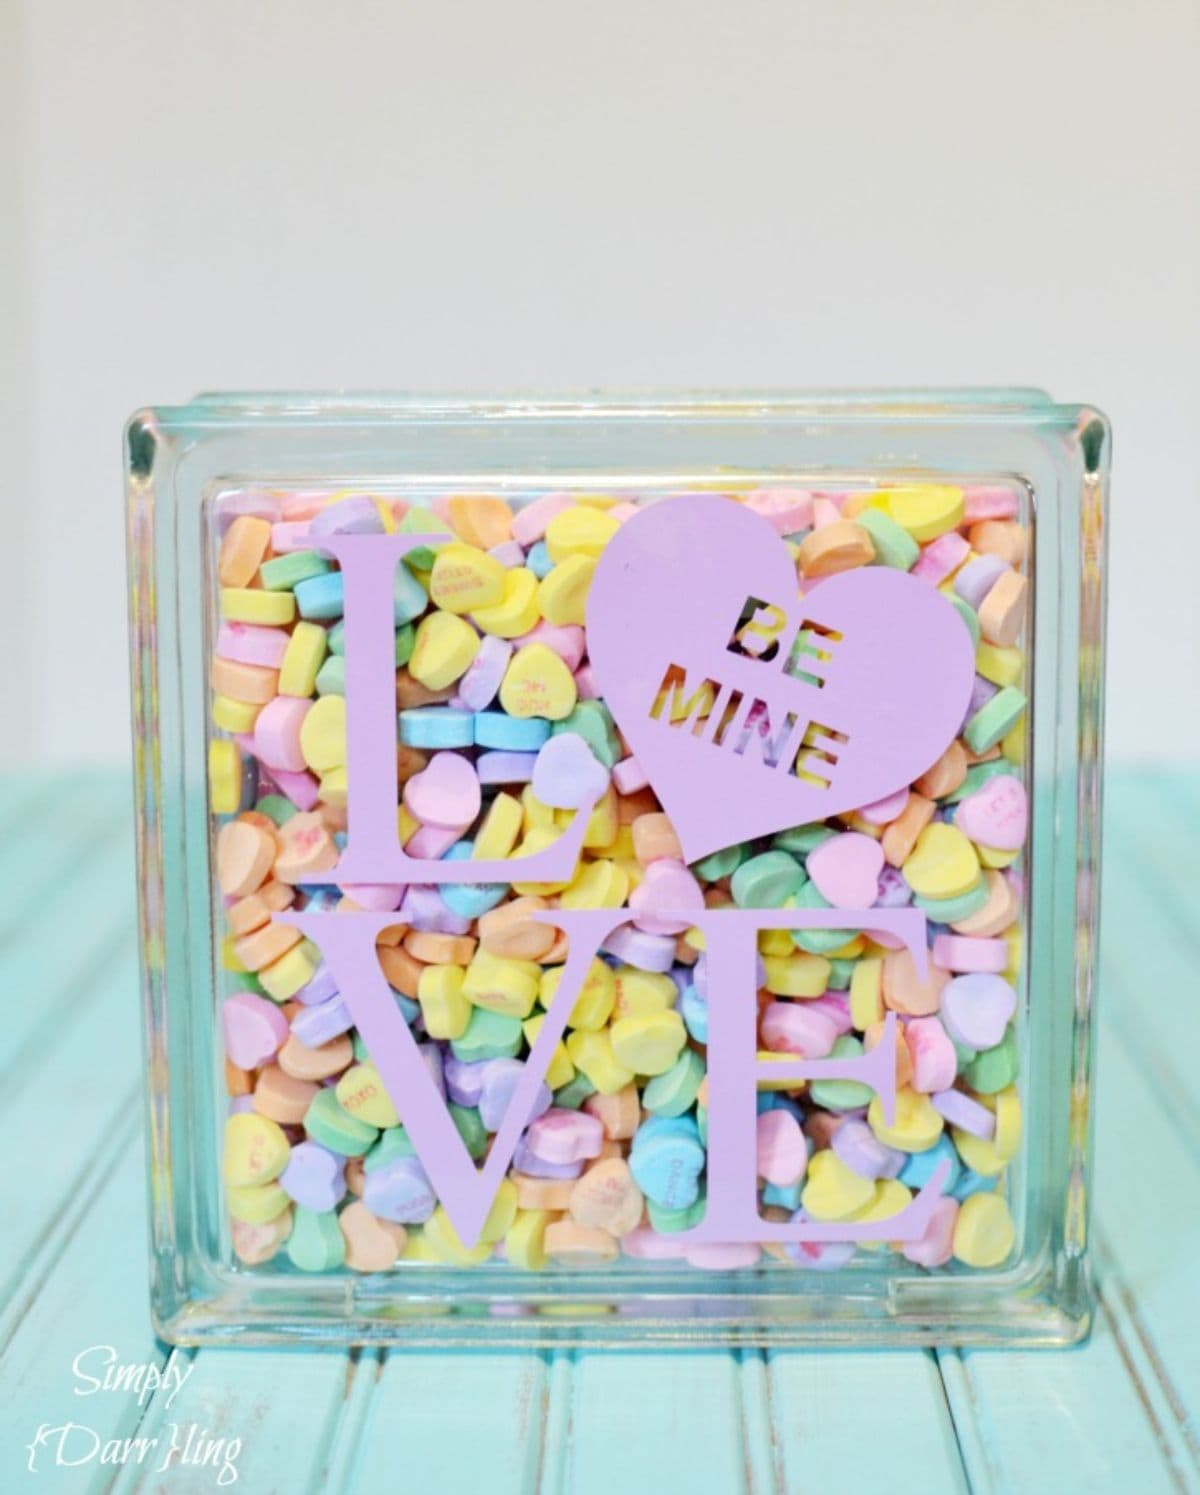 "on a turqoise blurred table is a perspex block with teh words ""LOVE"" on the front in pink. The O is a heart. The block is full of multi-colored candy hearts"